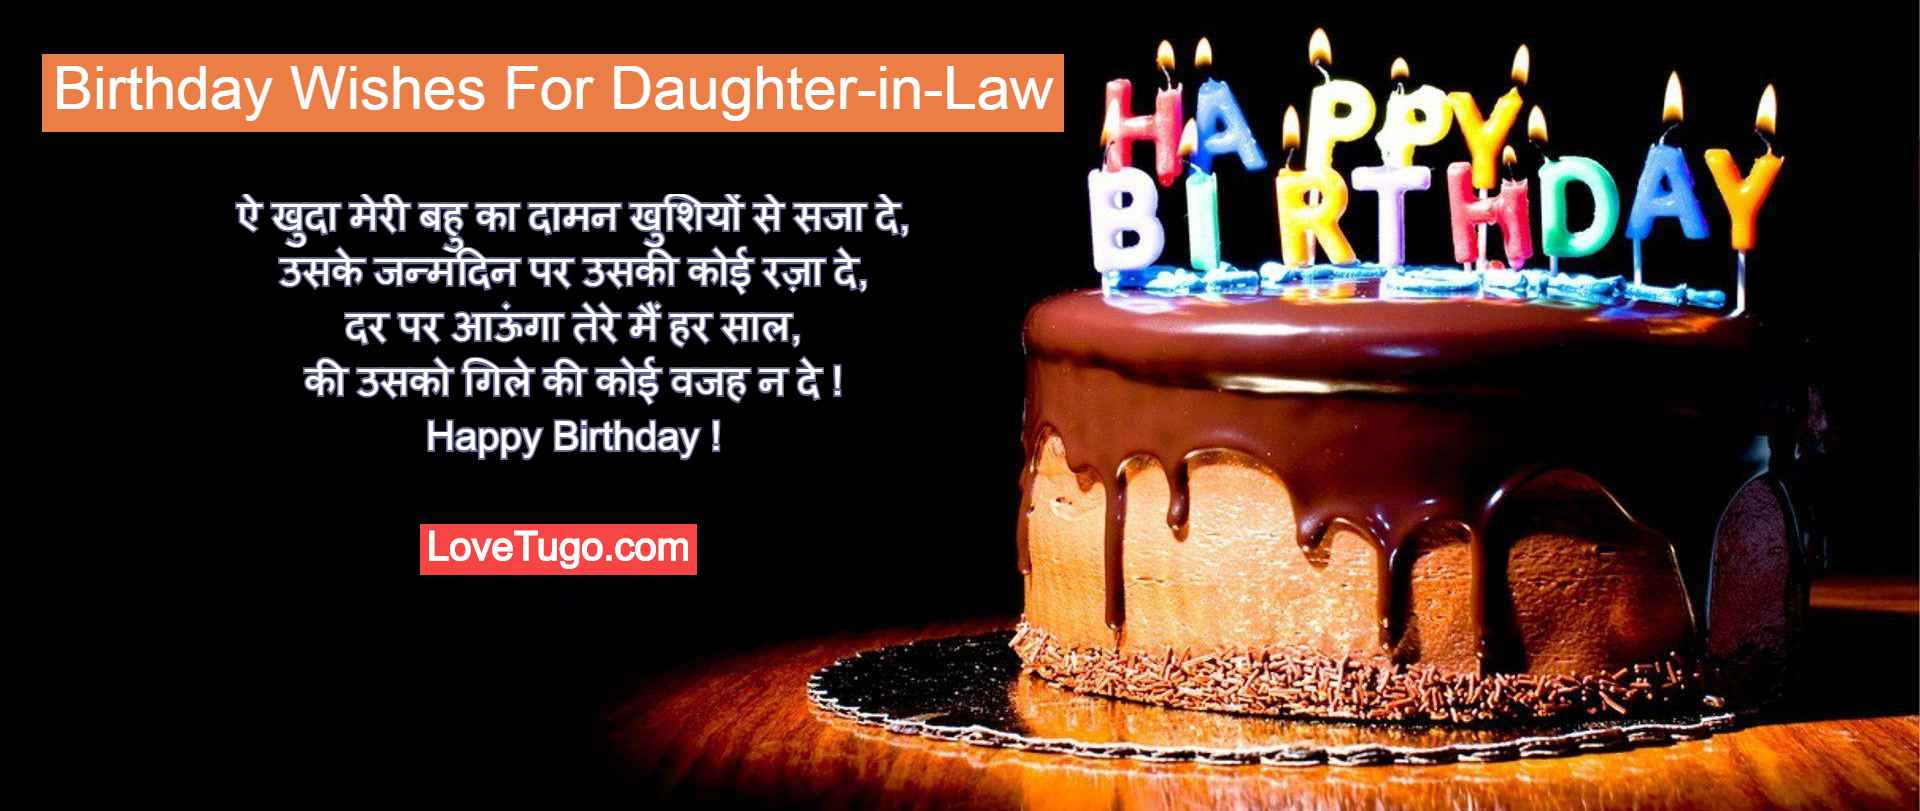 बहु जन्मदिन बधाई Birthday Wishes For Daughter-in-Law Hindi